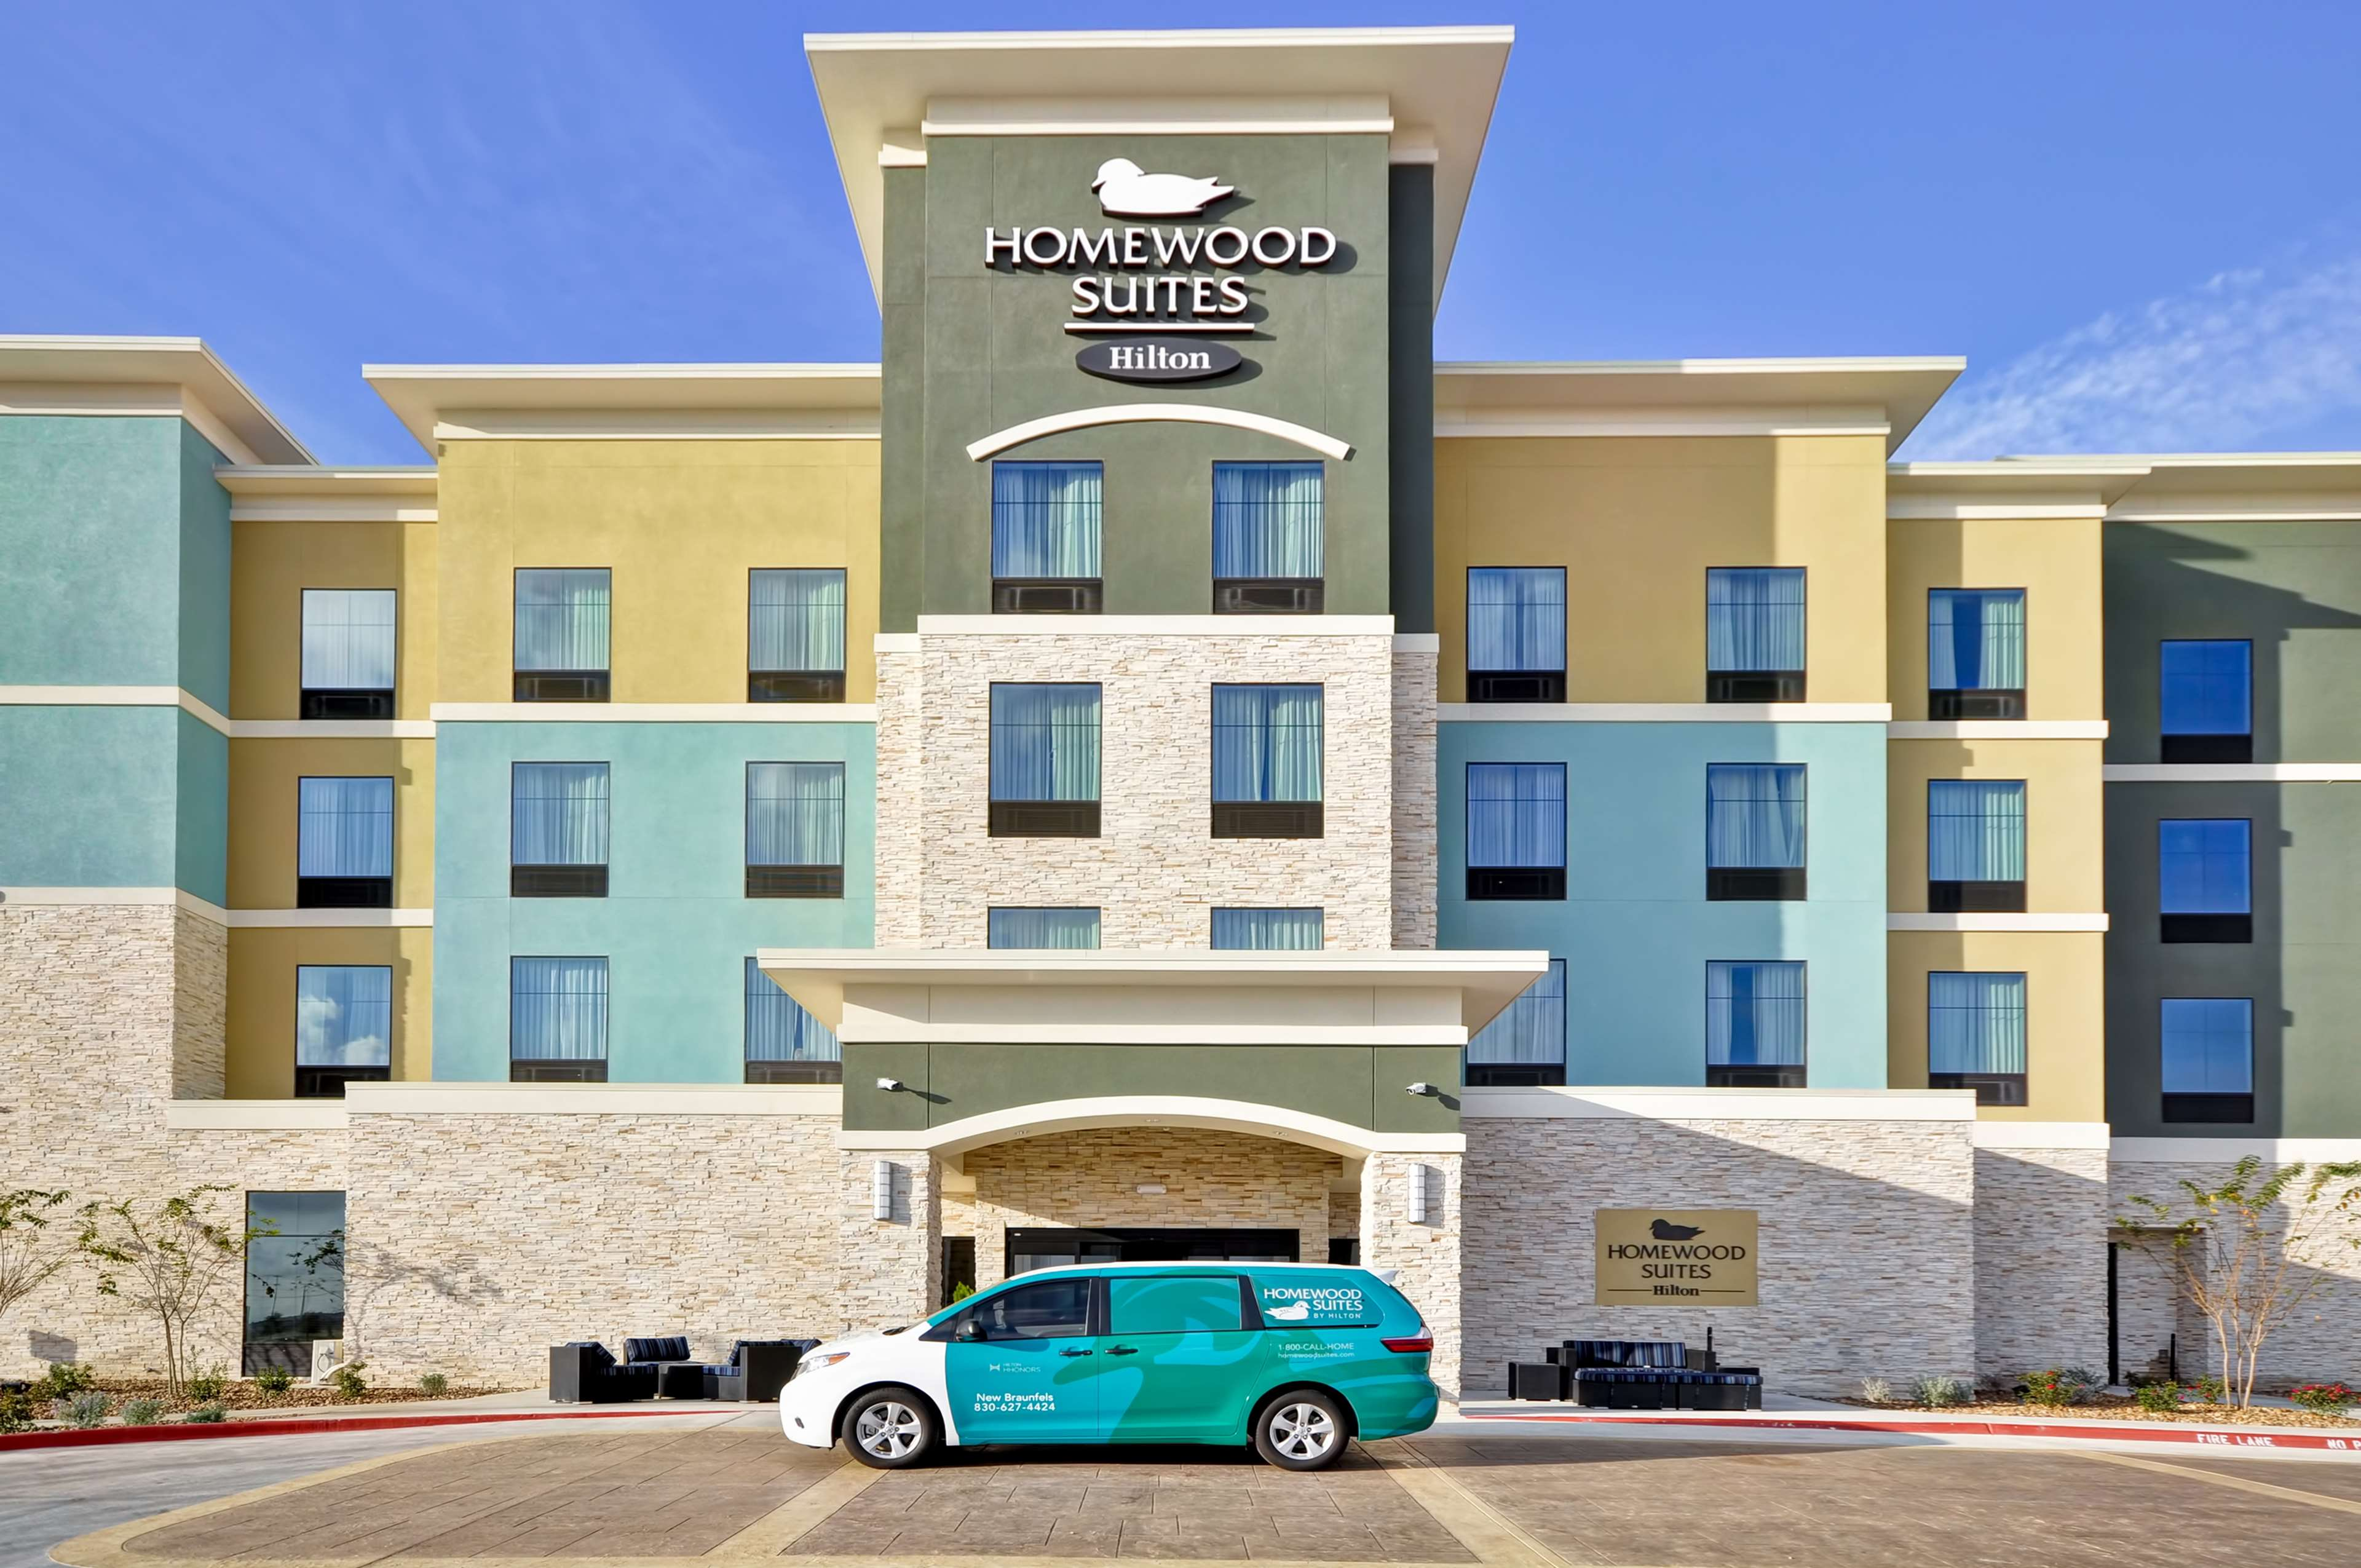 Homewood Suites by Hilton New Braunfels image 2